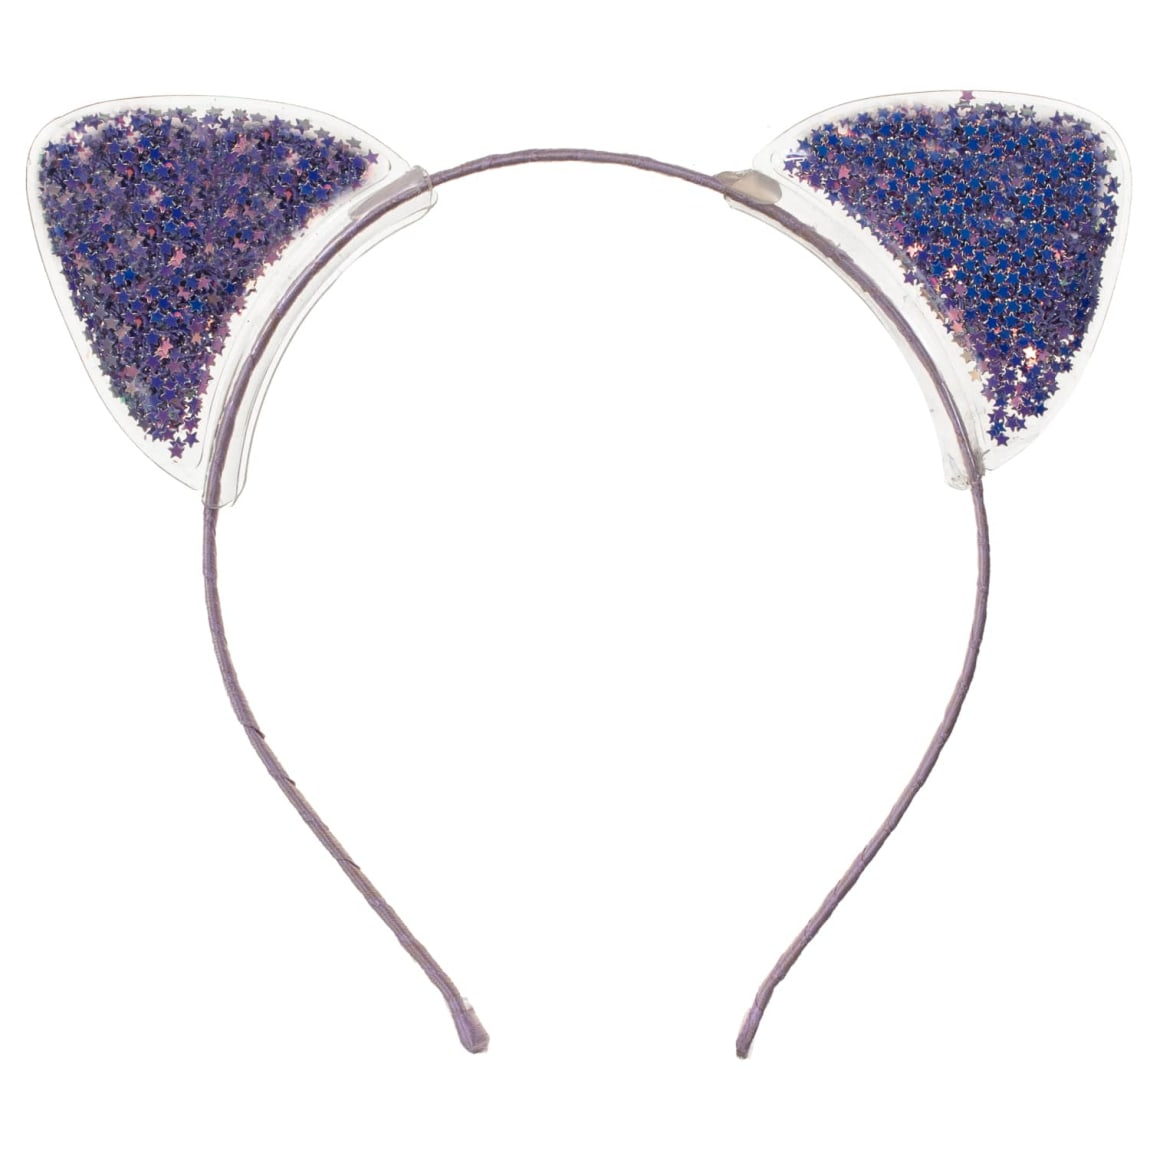 Ella Shaped Headband - Star Ears